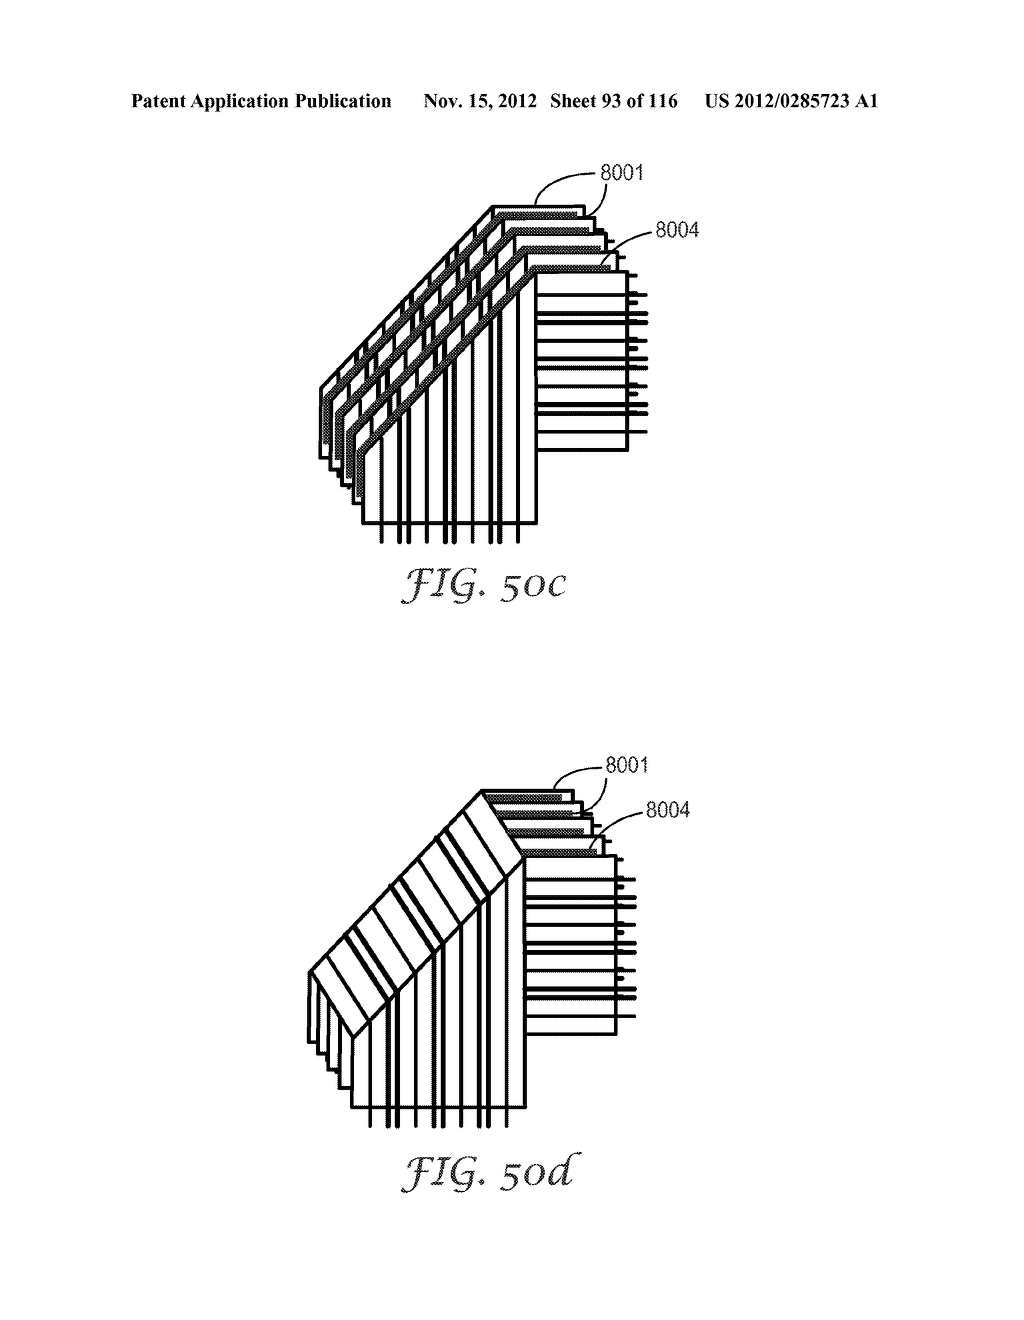 CONNECTOR ARRANGEMENTS FOR SHIELDED ELECTRICAL CABLES - diagram, schematic, and image 94